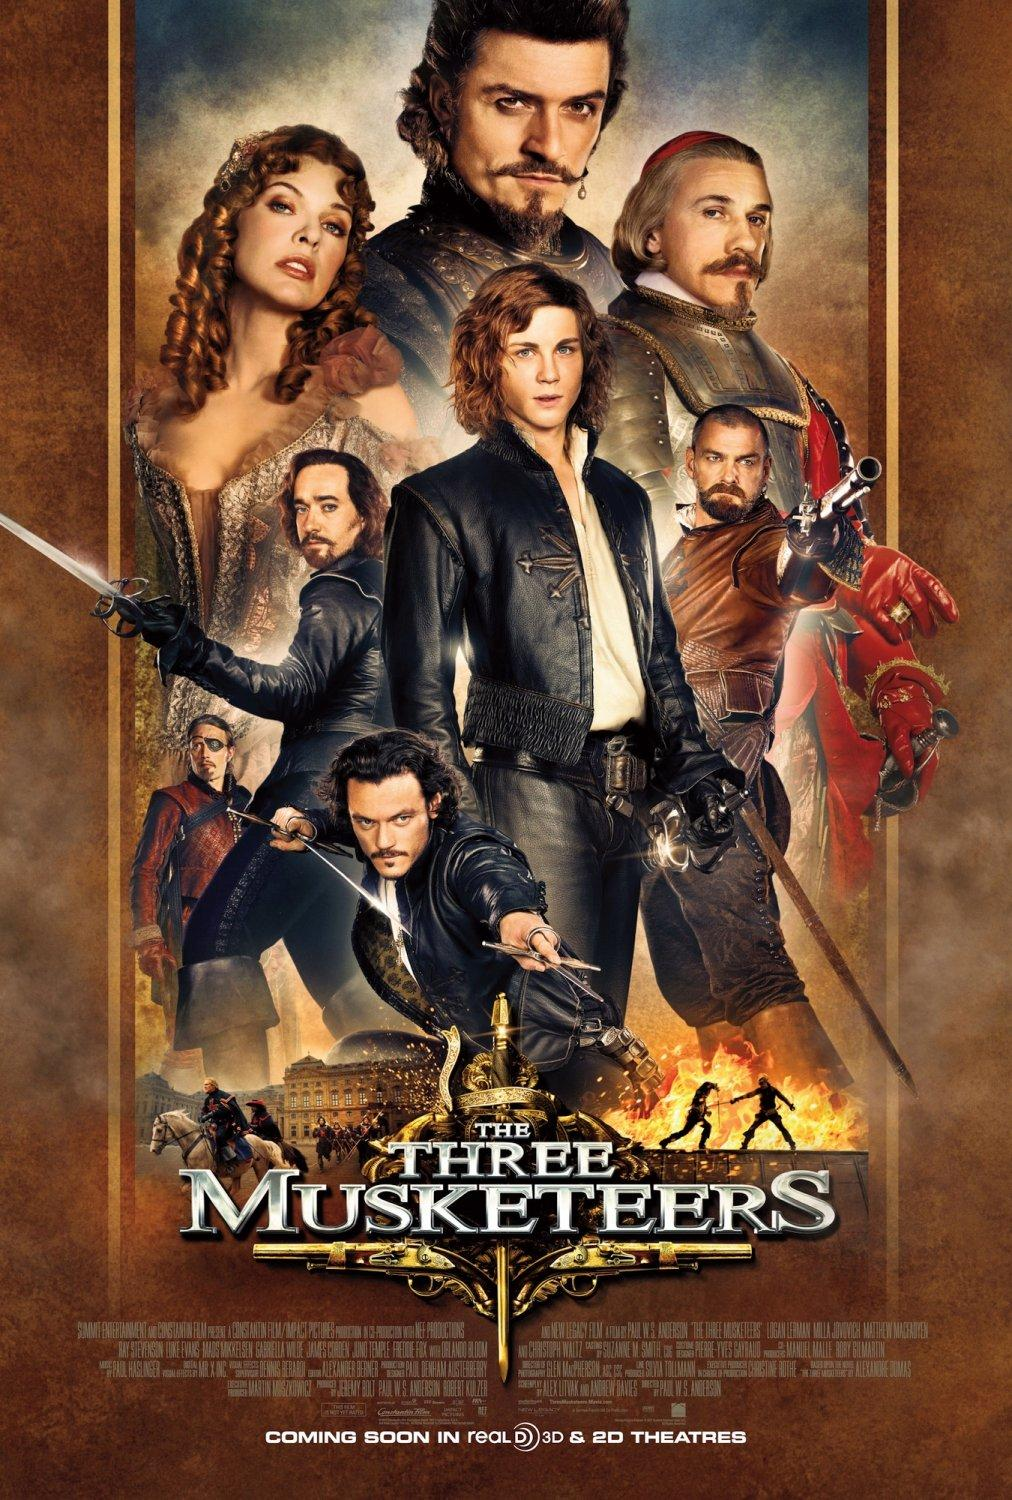 Three musketeers review